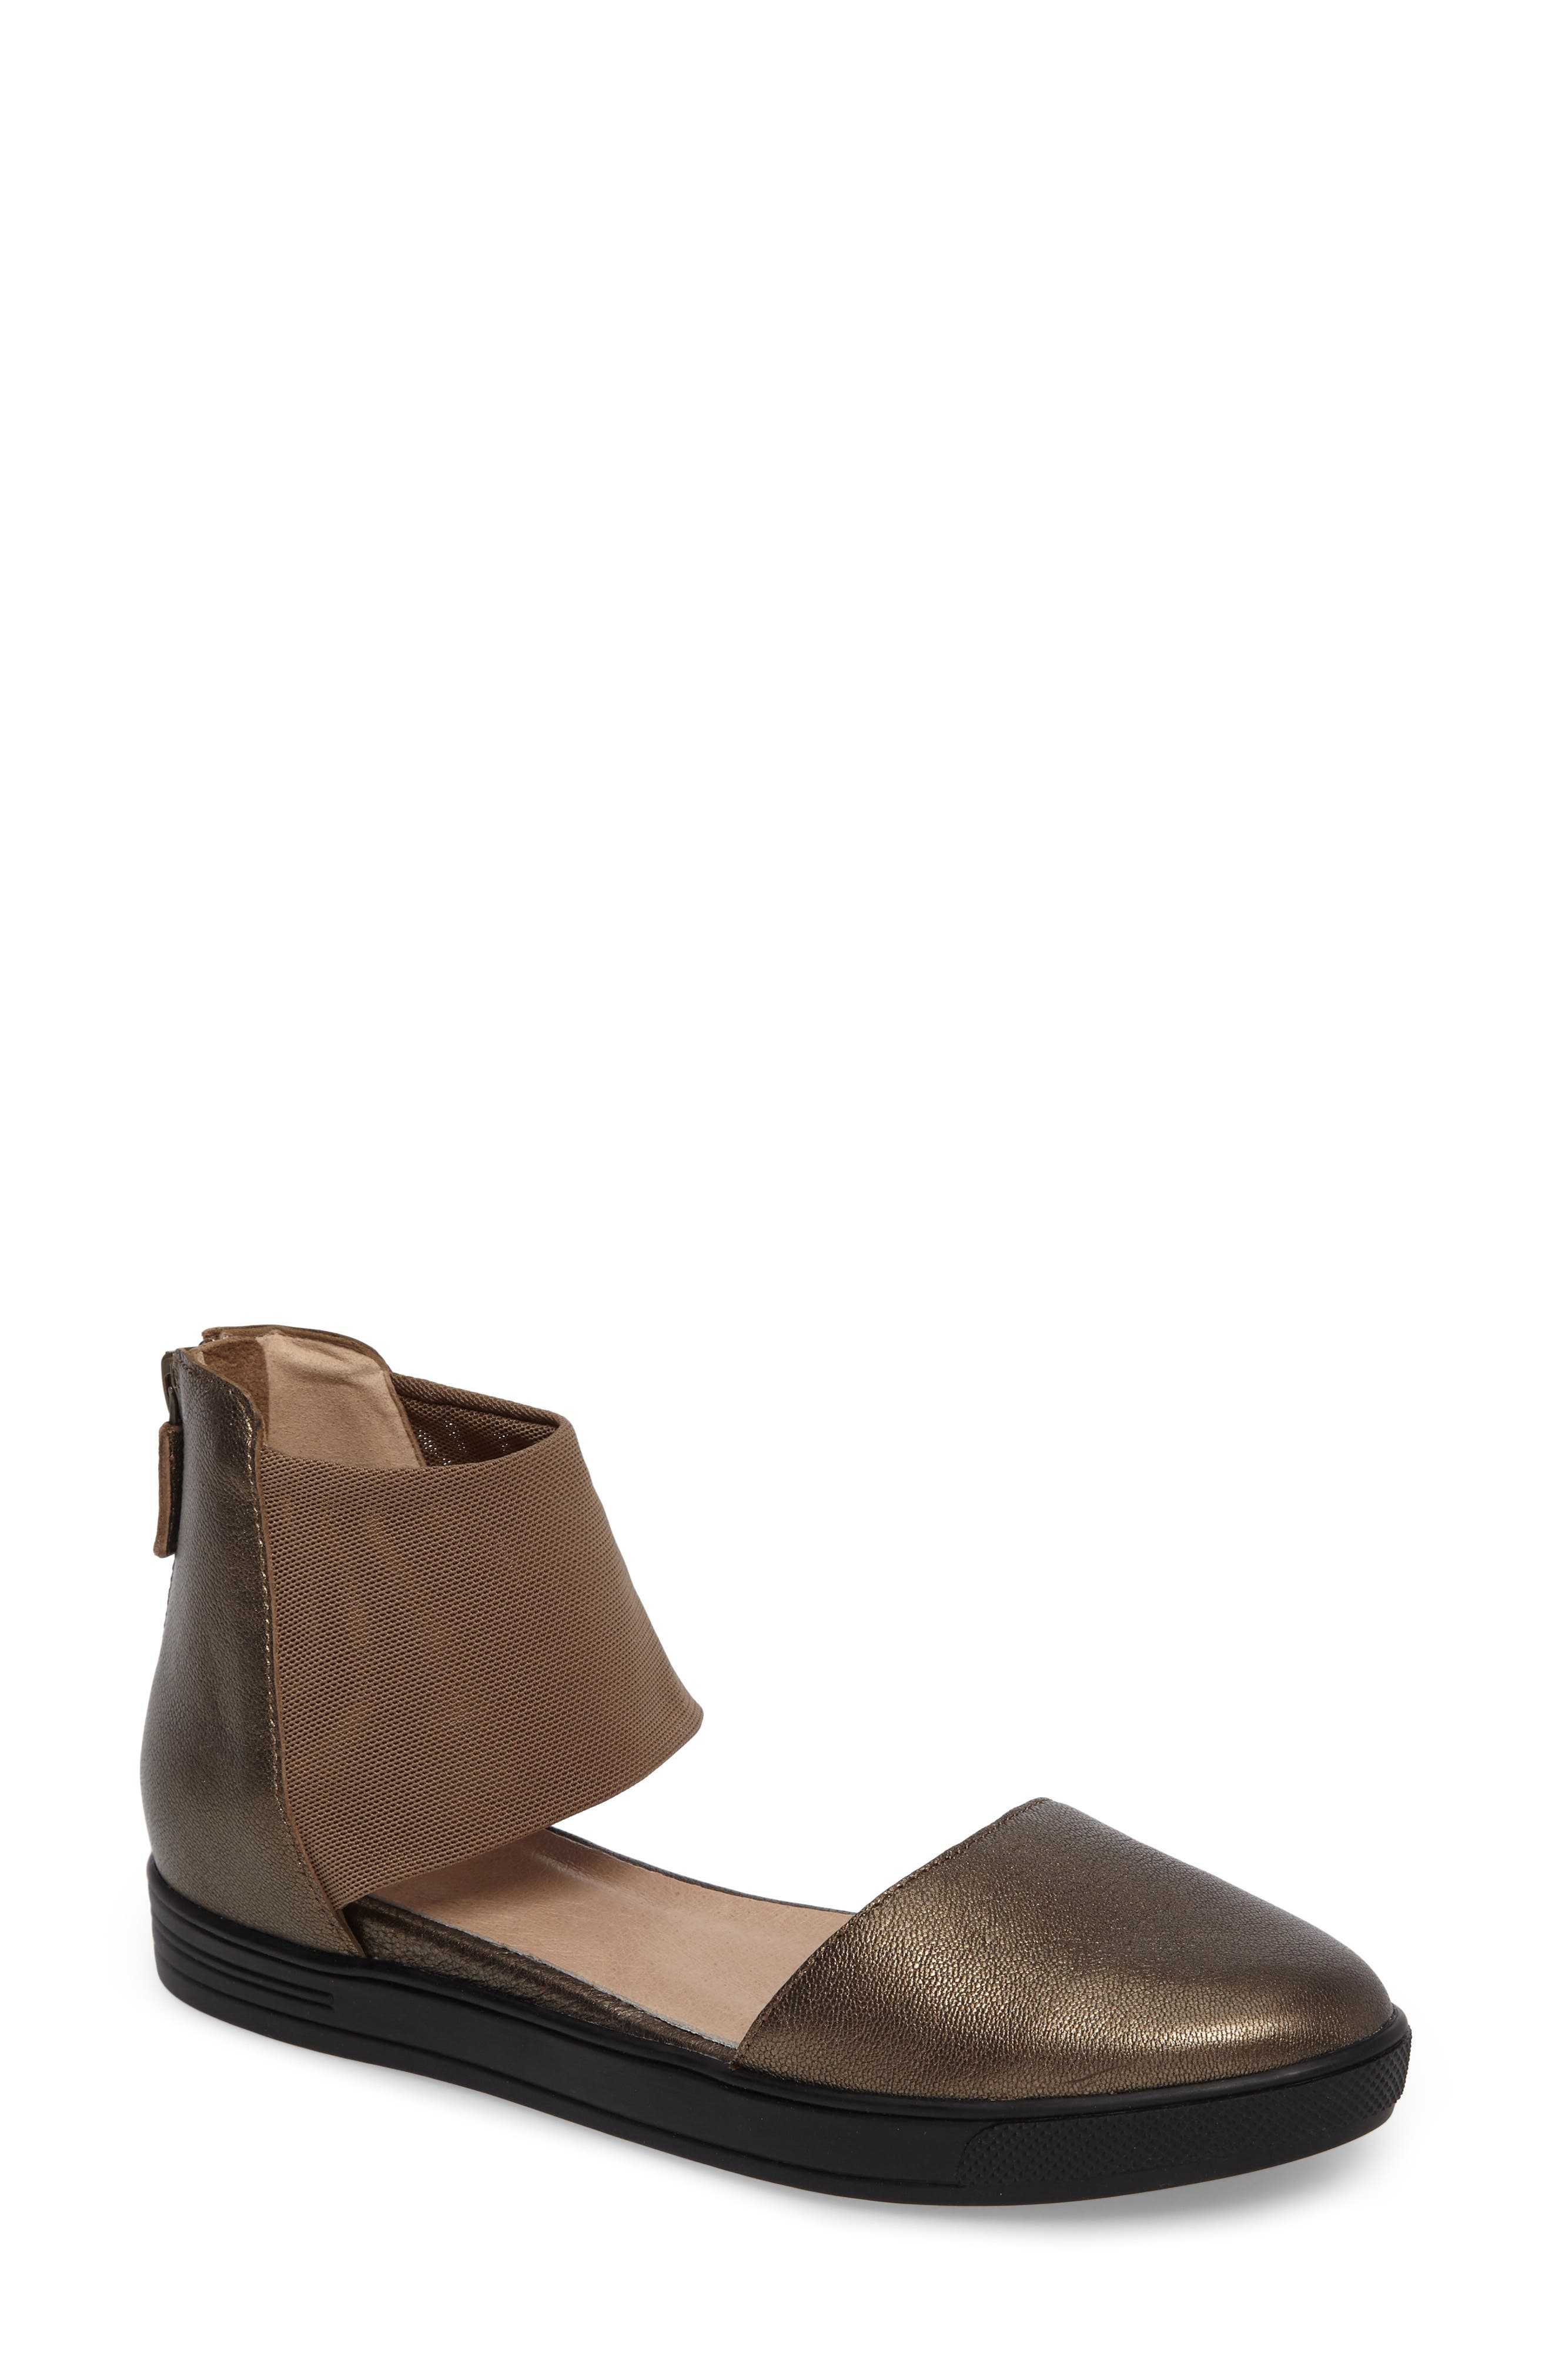 EILEEN FISHER Powell Ankle Cuff Sandal